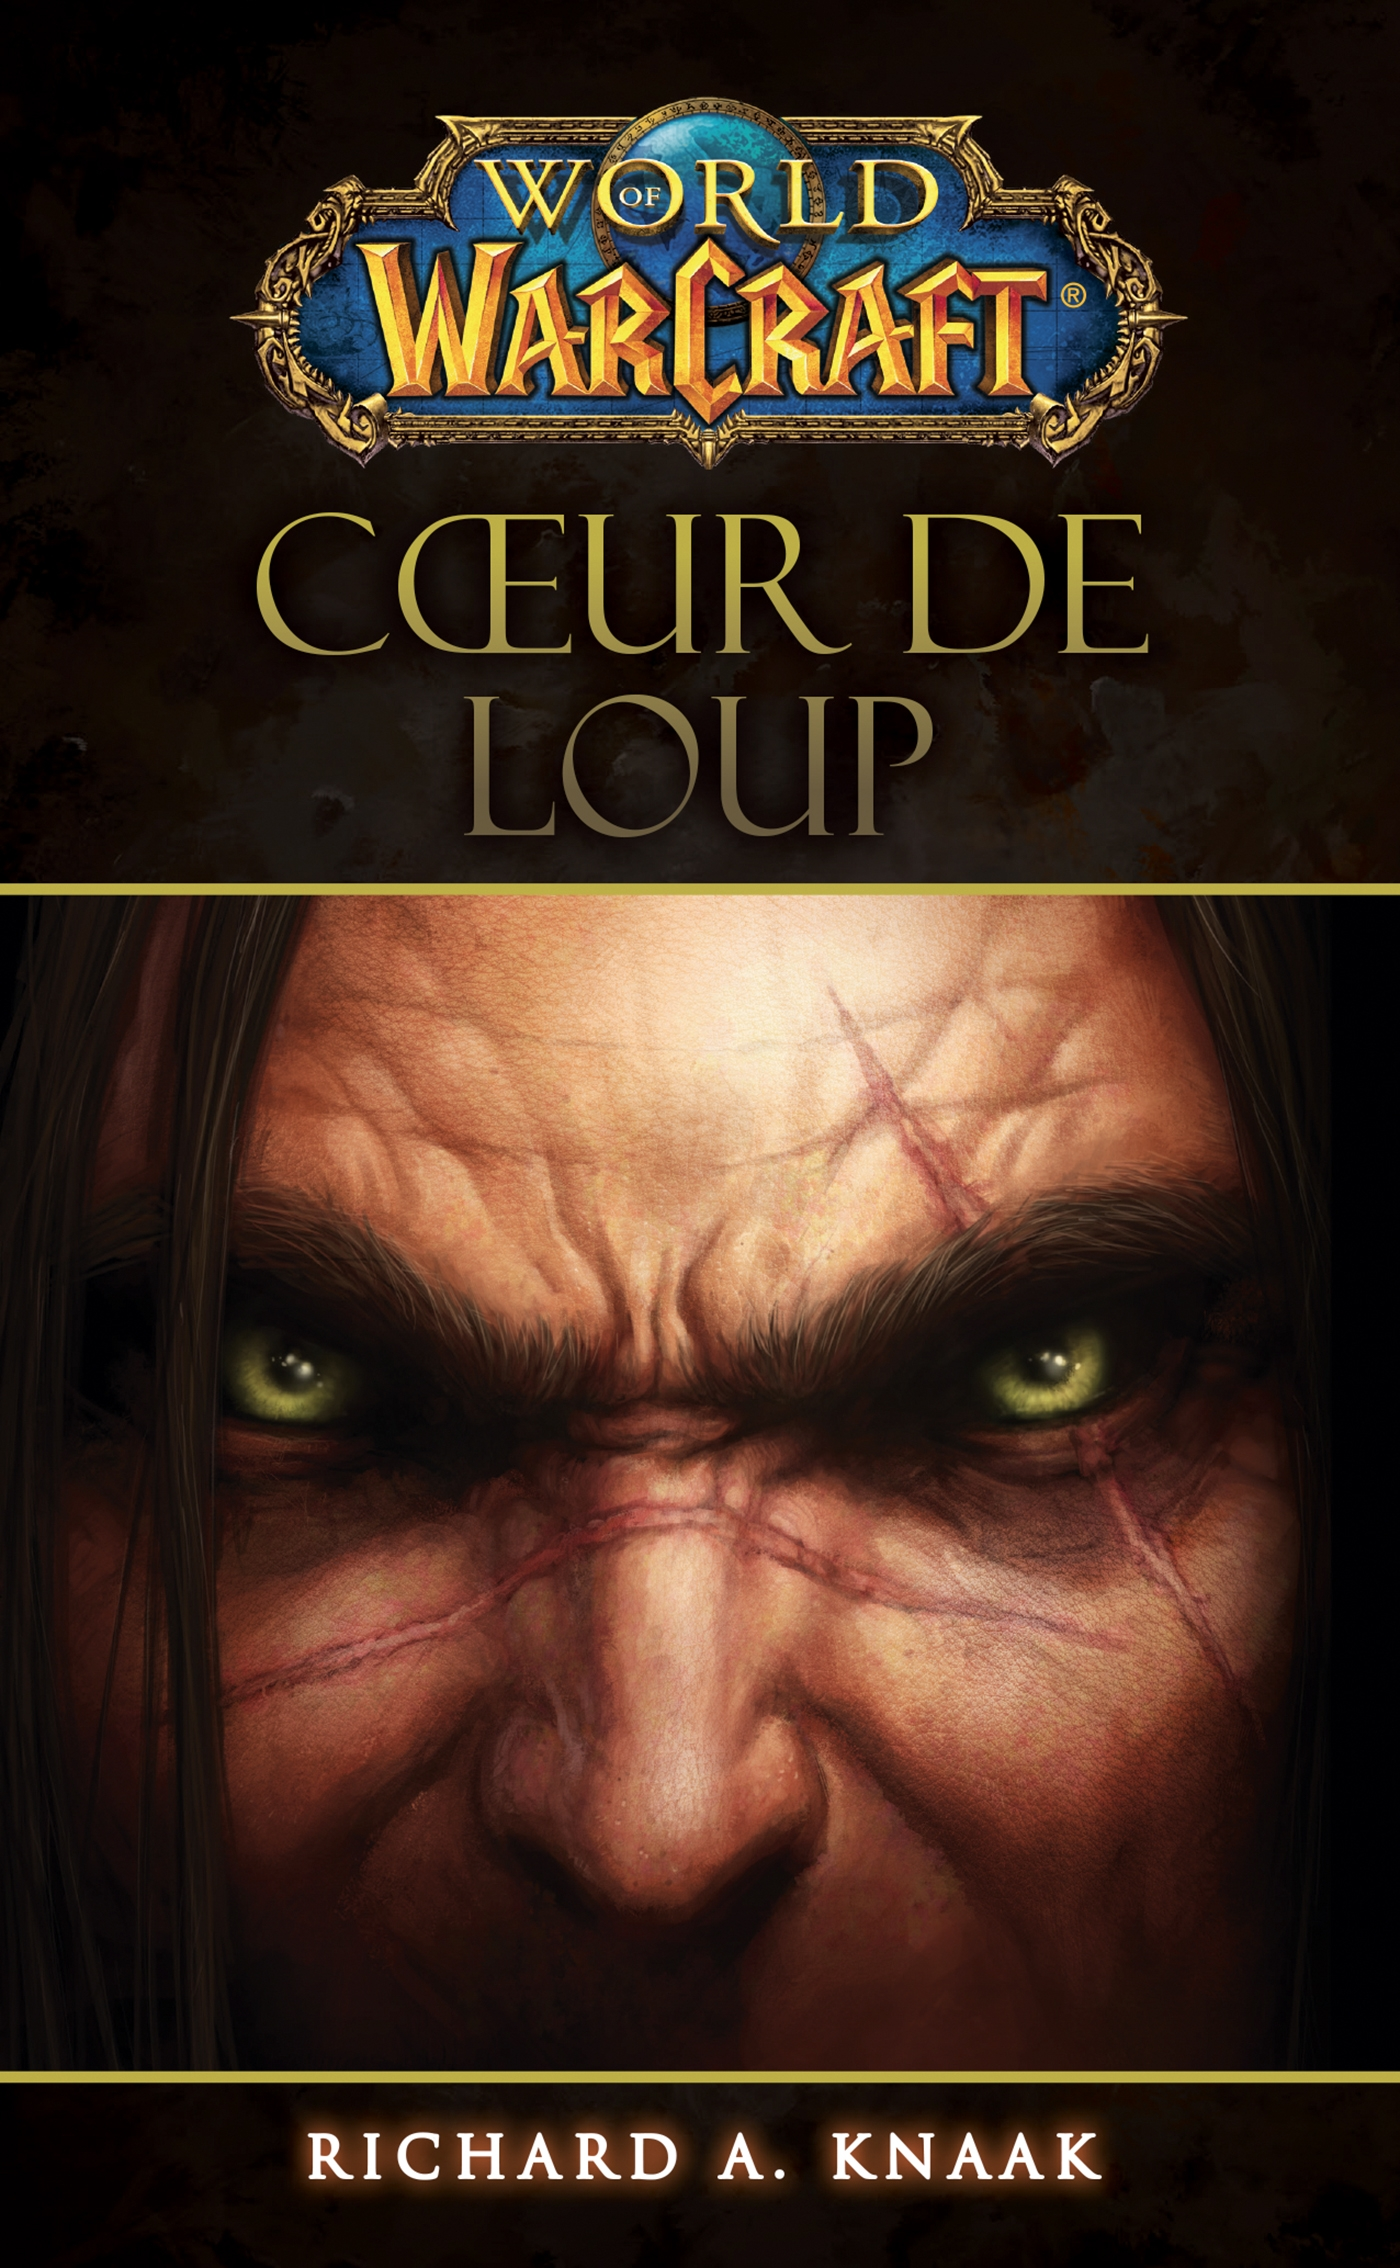 World of Warcraft - Coeur de loup